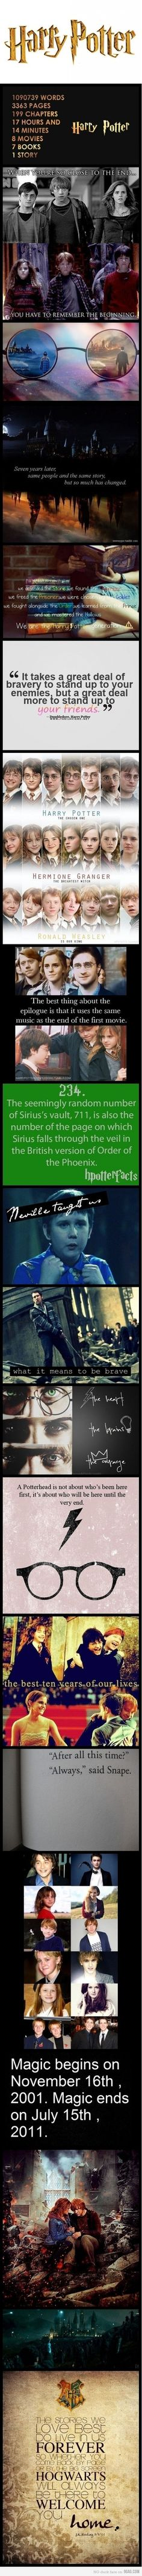 Harry Potter Forever!!!